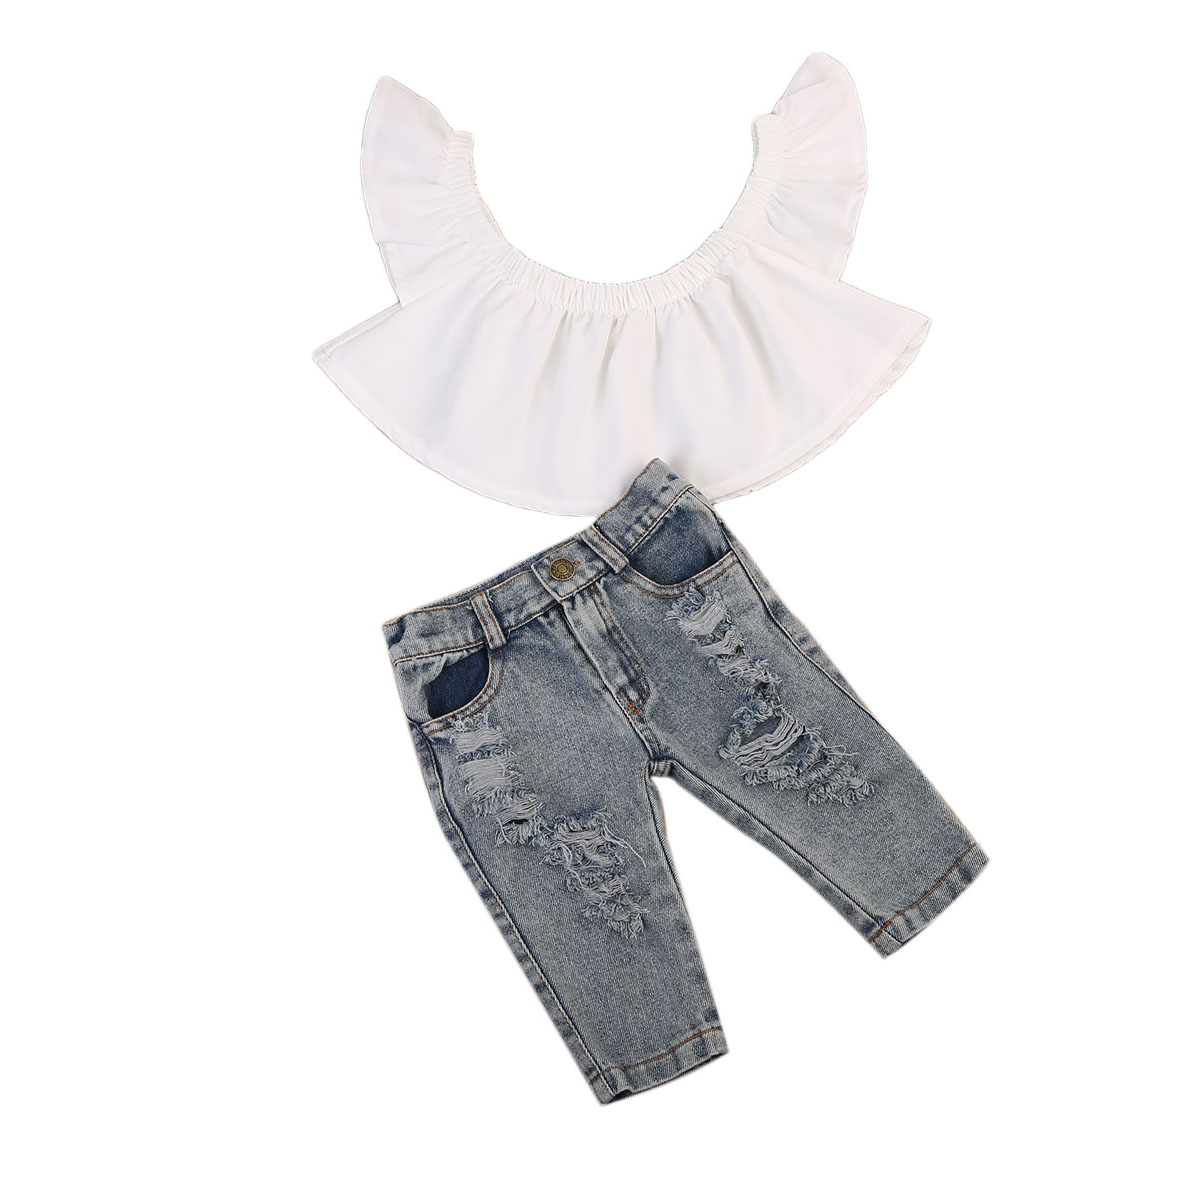 Babies Street Style Clothing Set Infant Kids Baby Girls Off Shoulder Tops Blouse+Ripped Holes Denim Jeans Pants Outfits